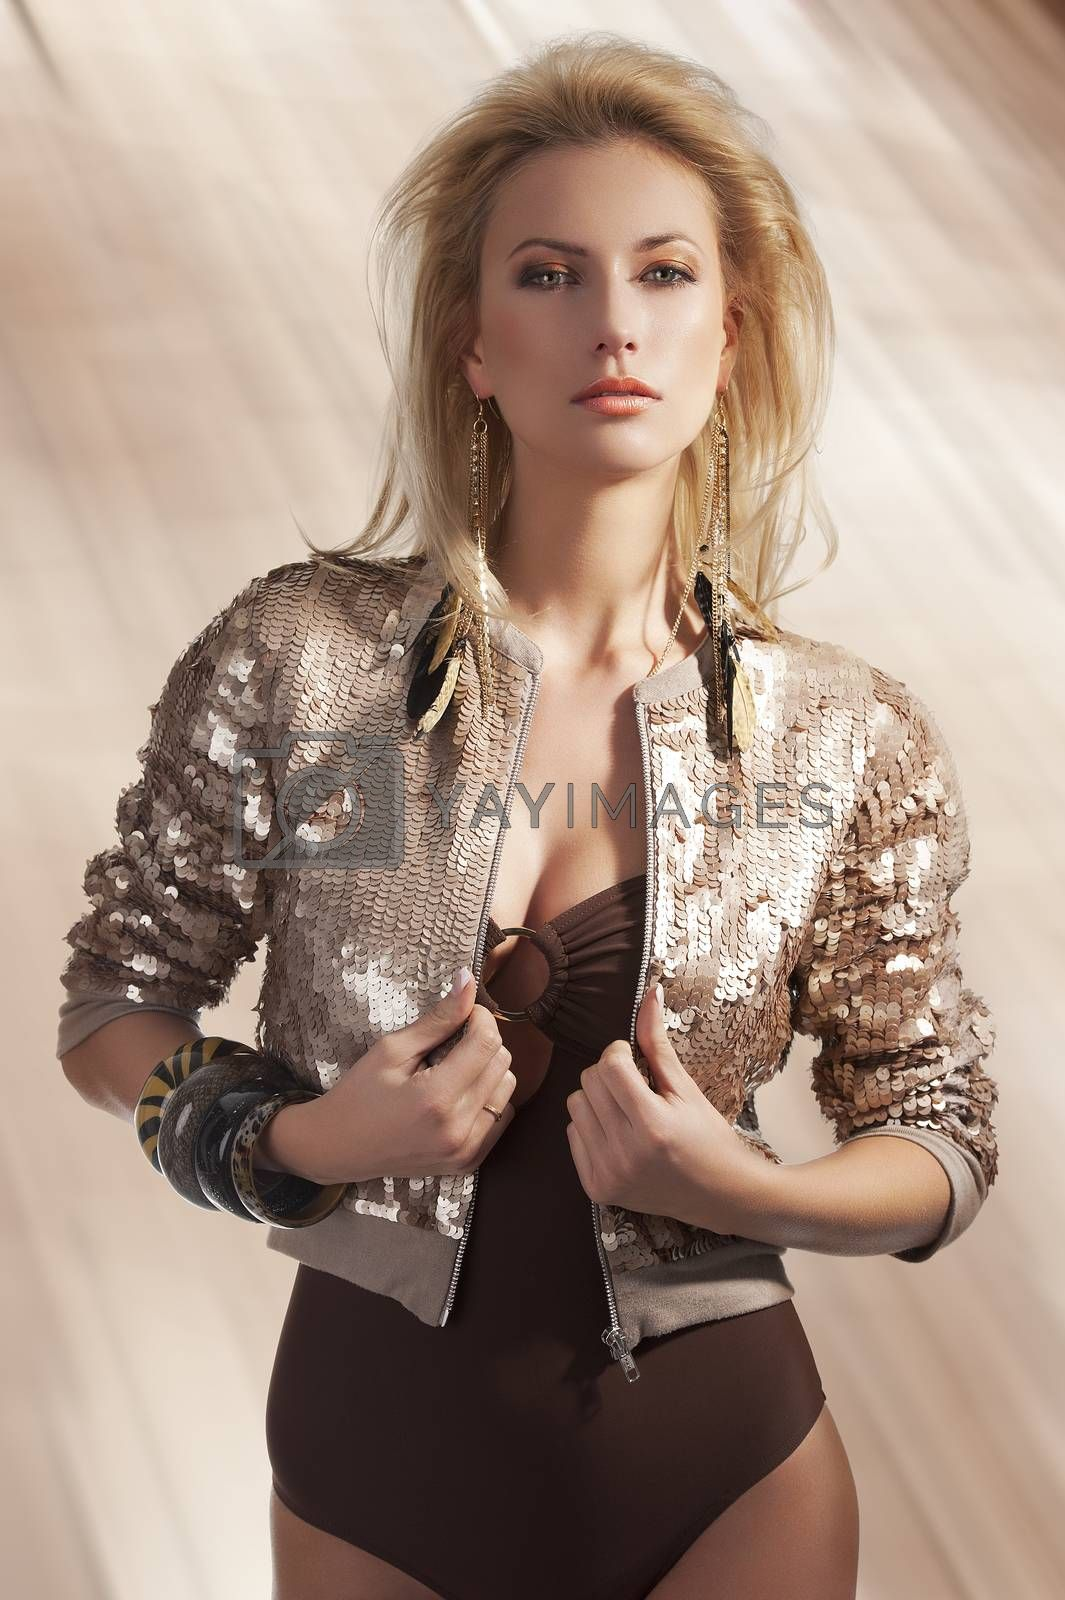 Royalty free image of fashion girl with sequins top by fotoCD